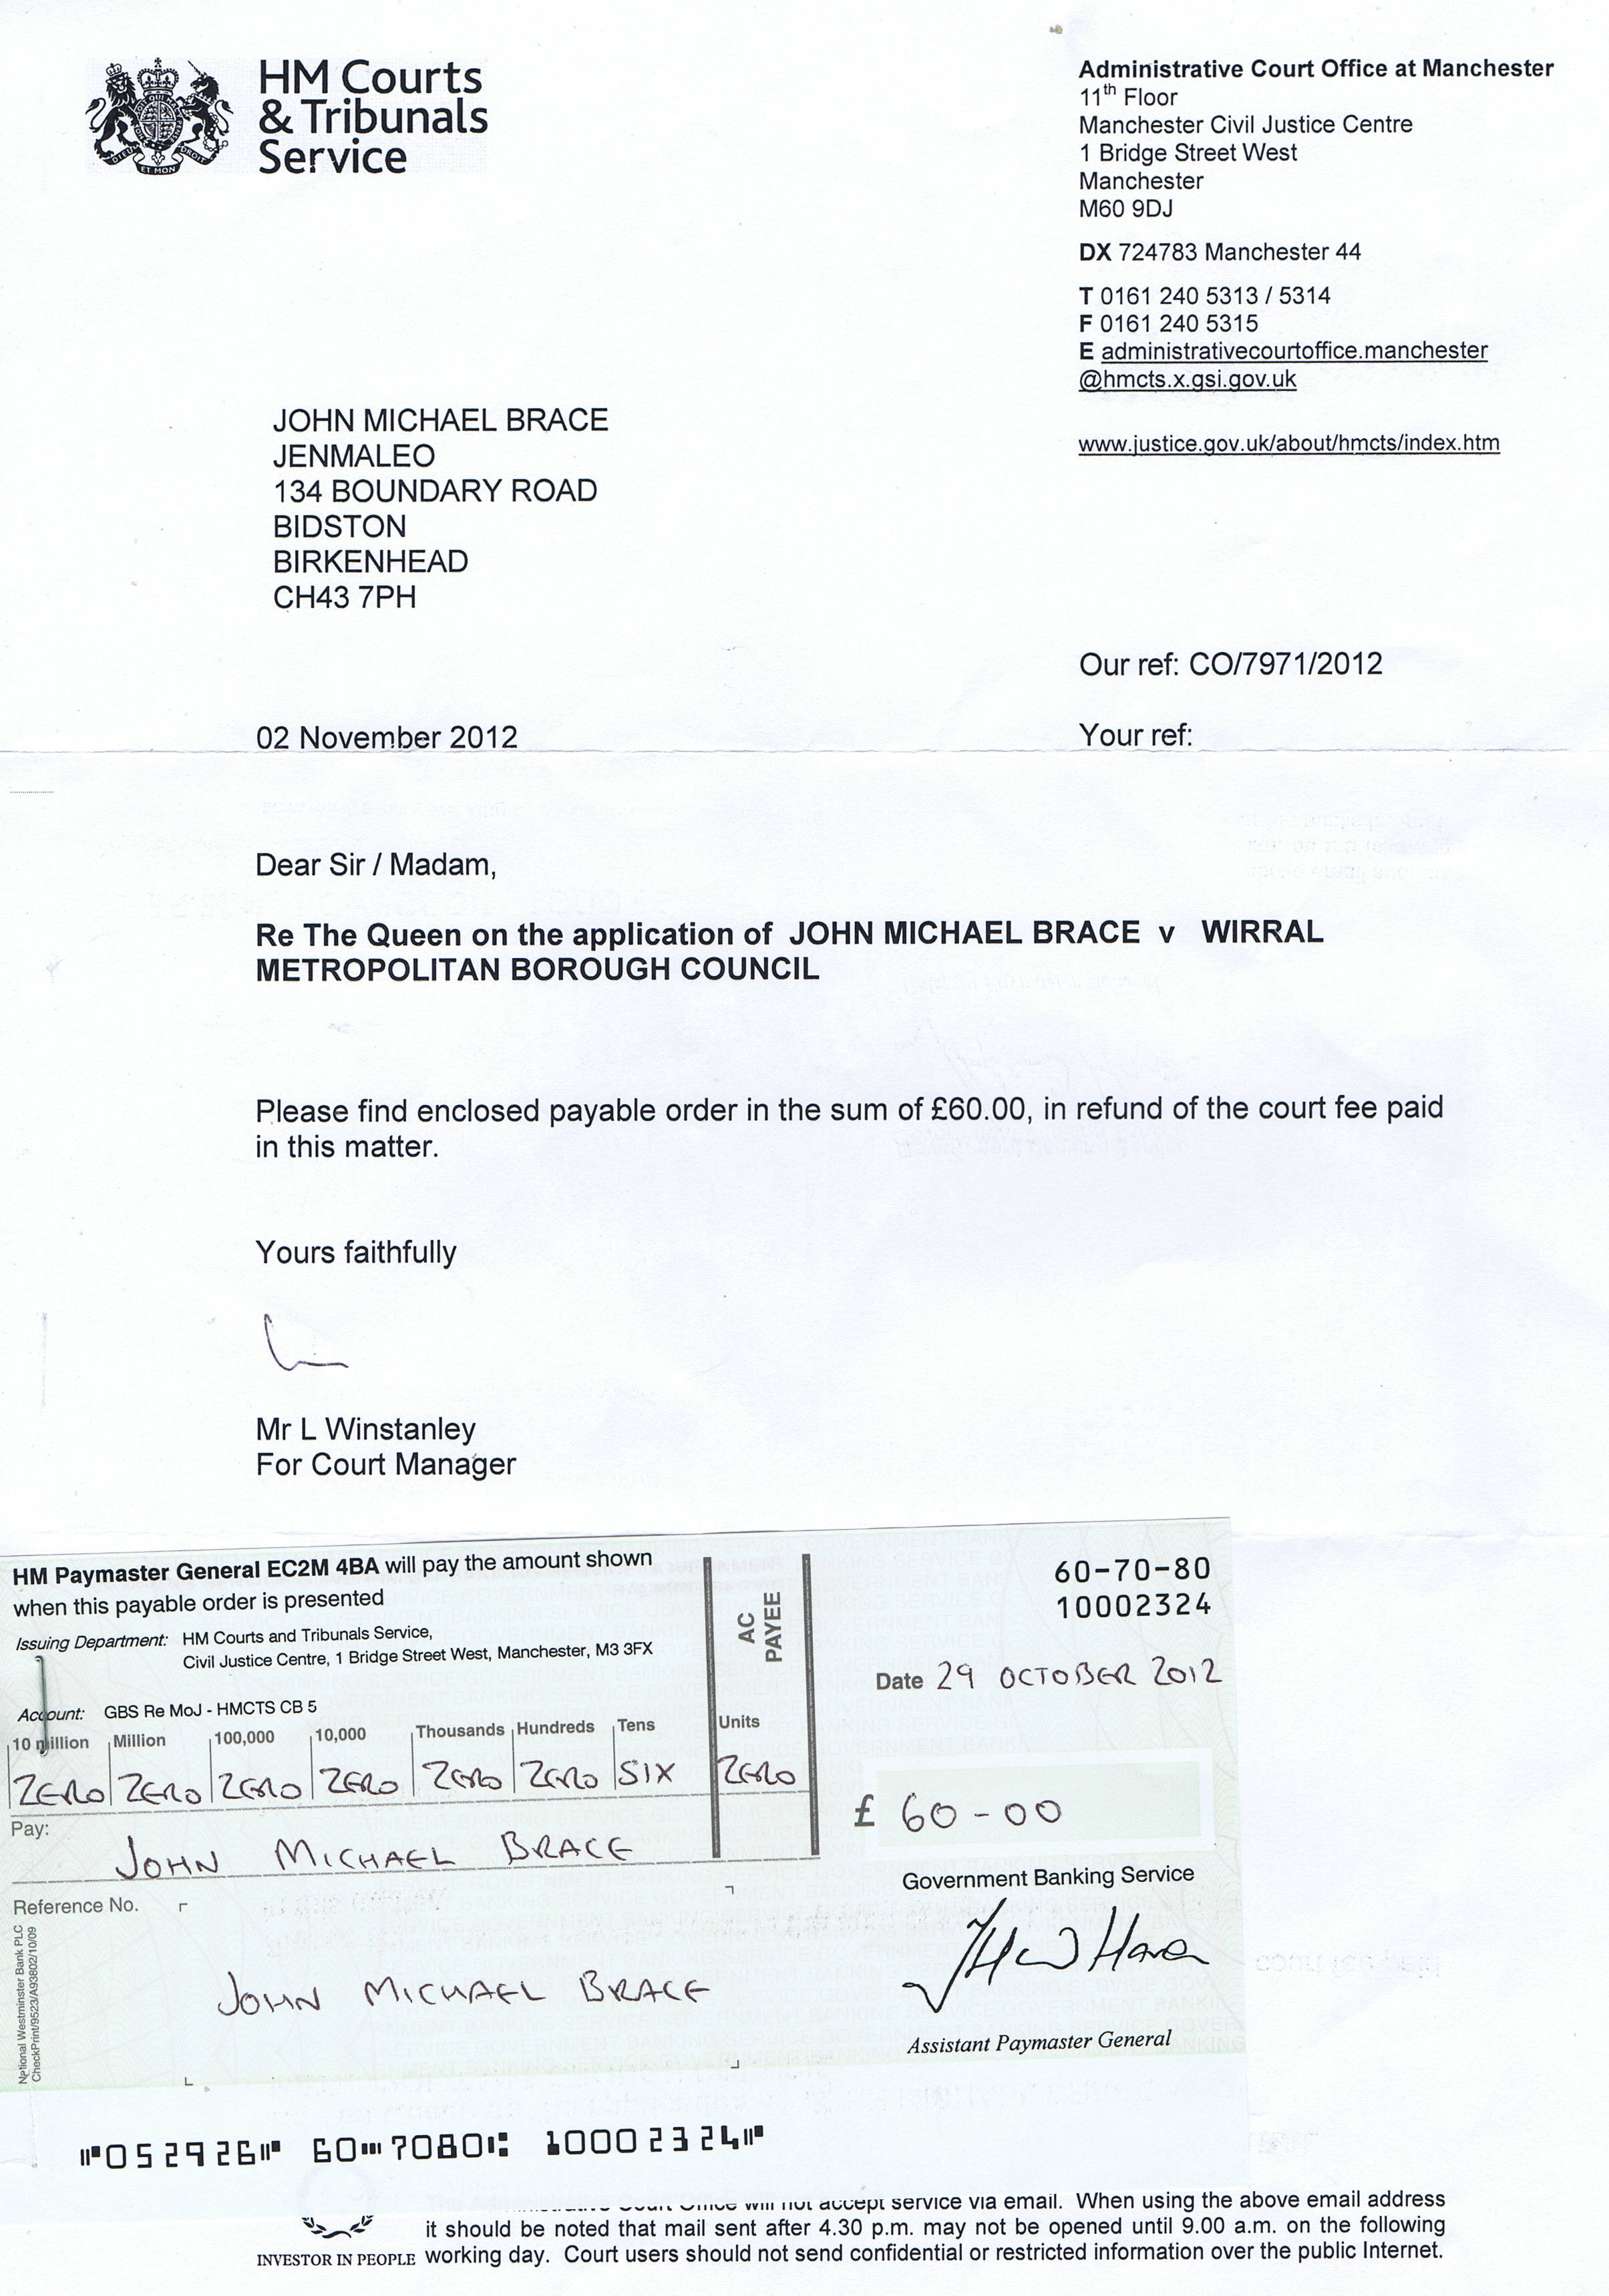 Administrative Court letter and £60 cheque for refund of court fee